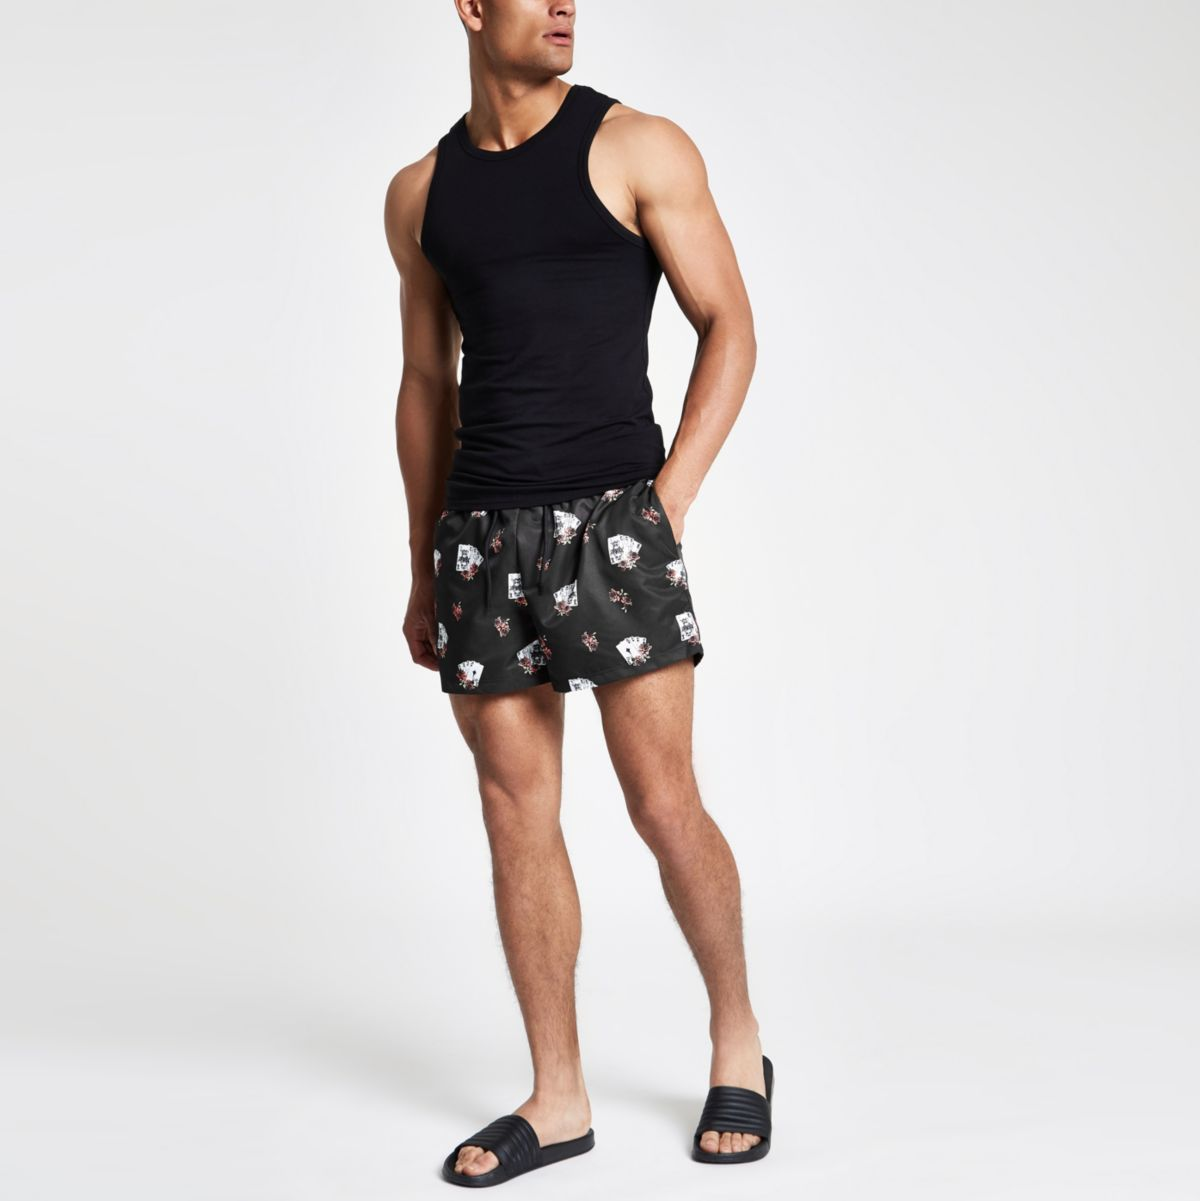 swim print tarot drawstring card shorts Black 6zwgpBq